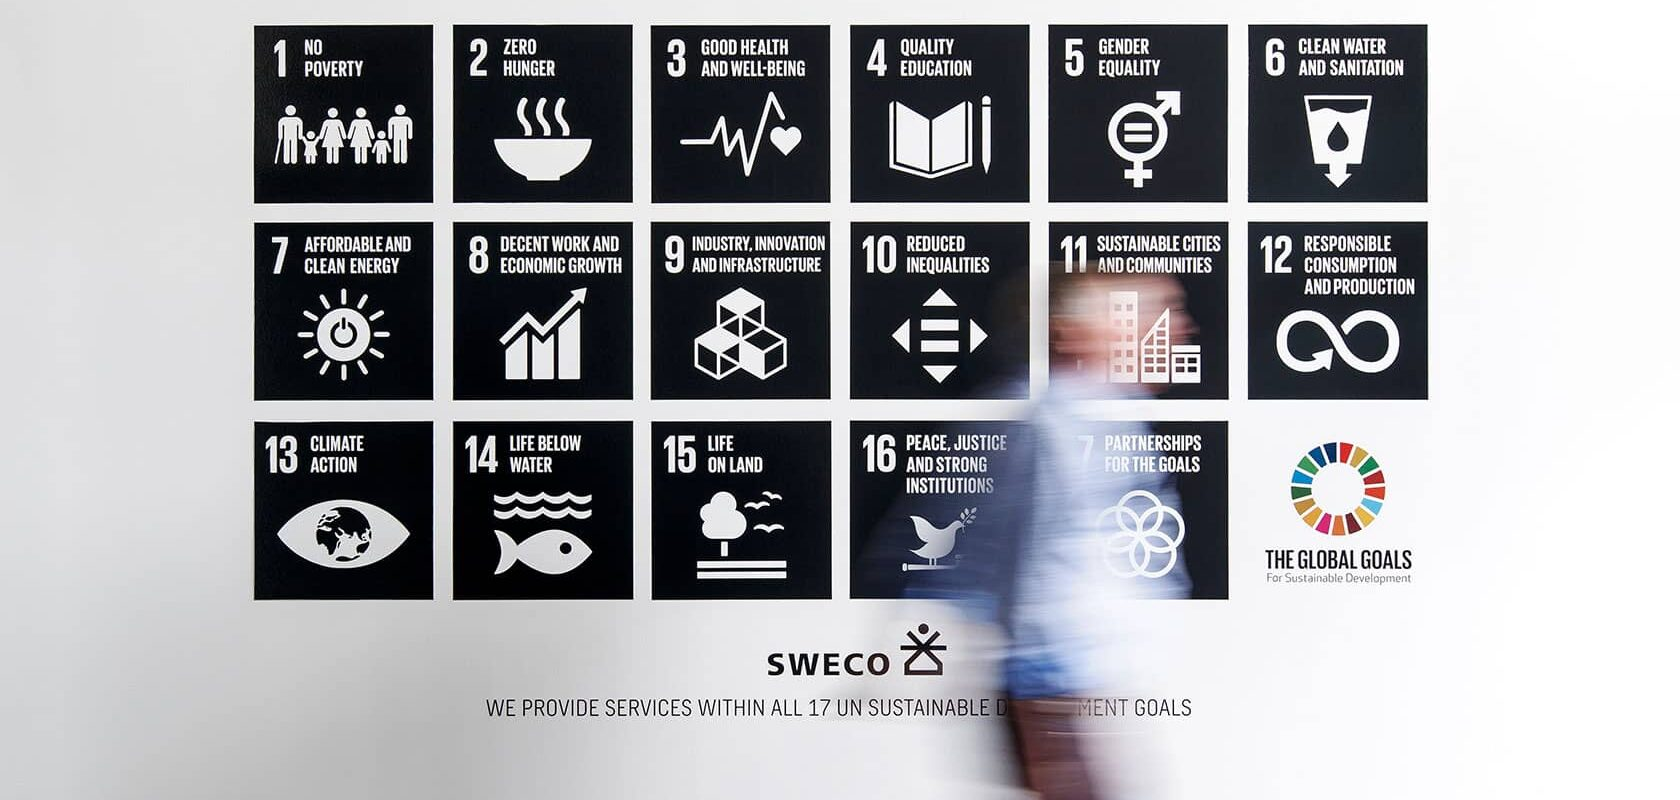 UN the global goals for sustainable development